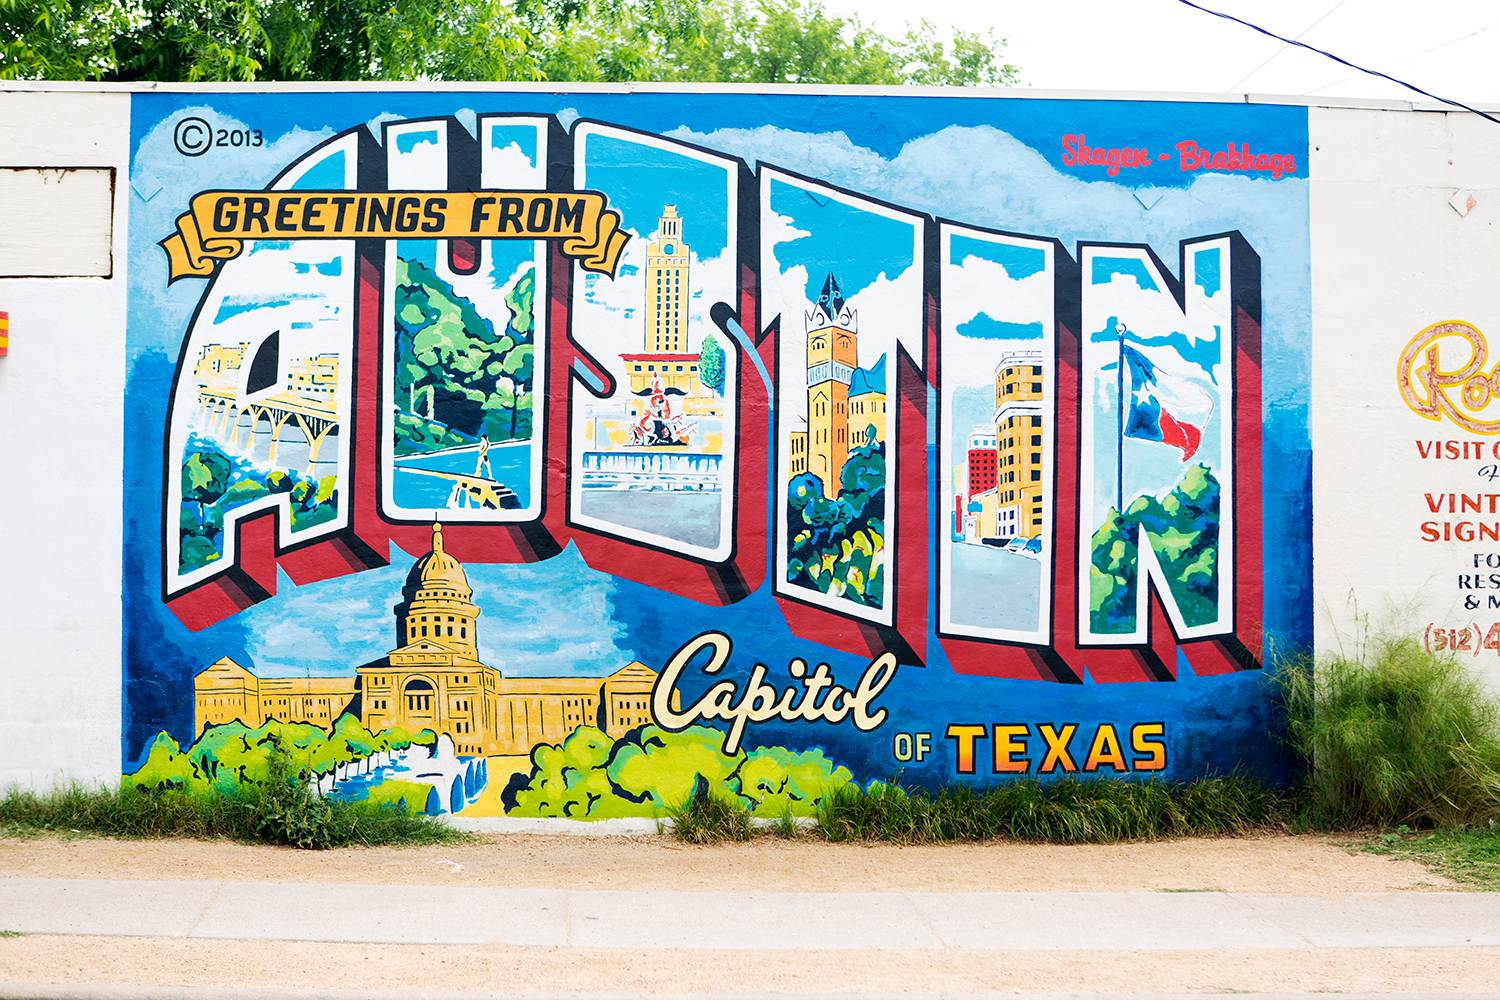 How to Spend the Day in Austin During SXSW